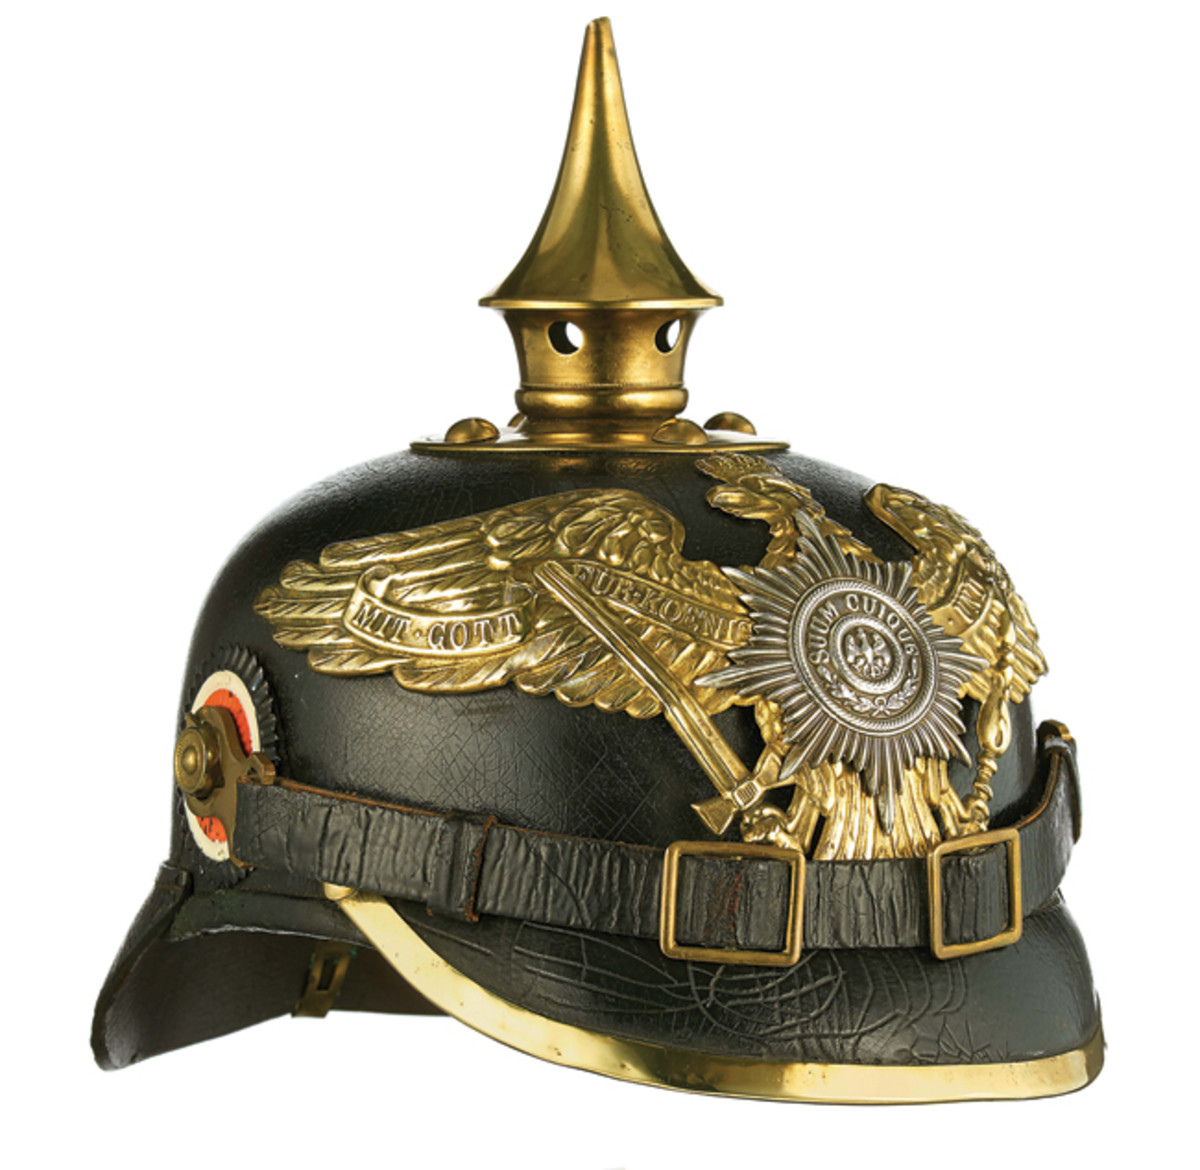 "The ""Reich's Kokarde"" (black / white / red) worn on the right side of the Pickelhaube."